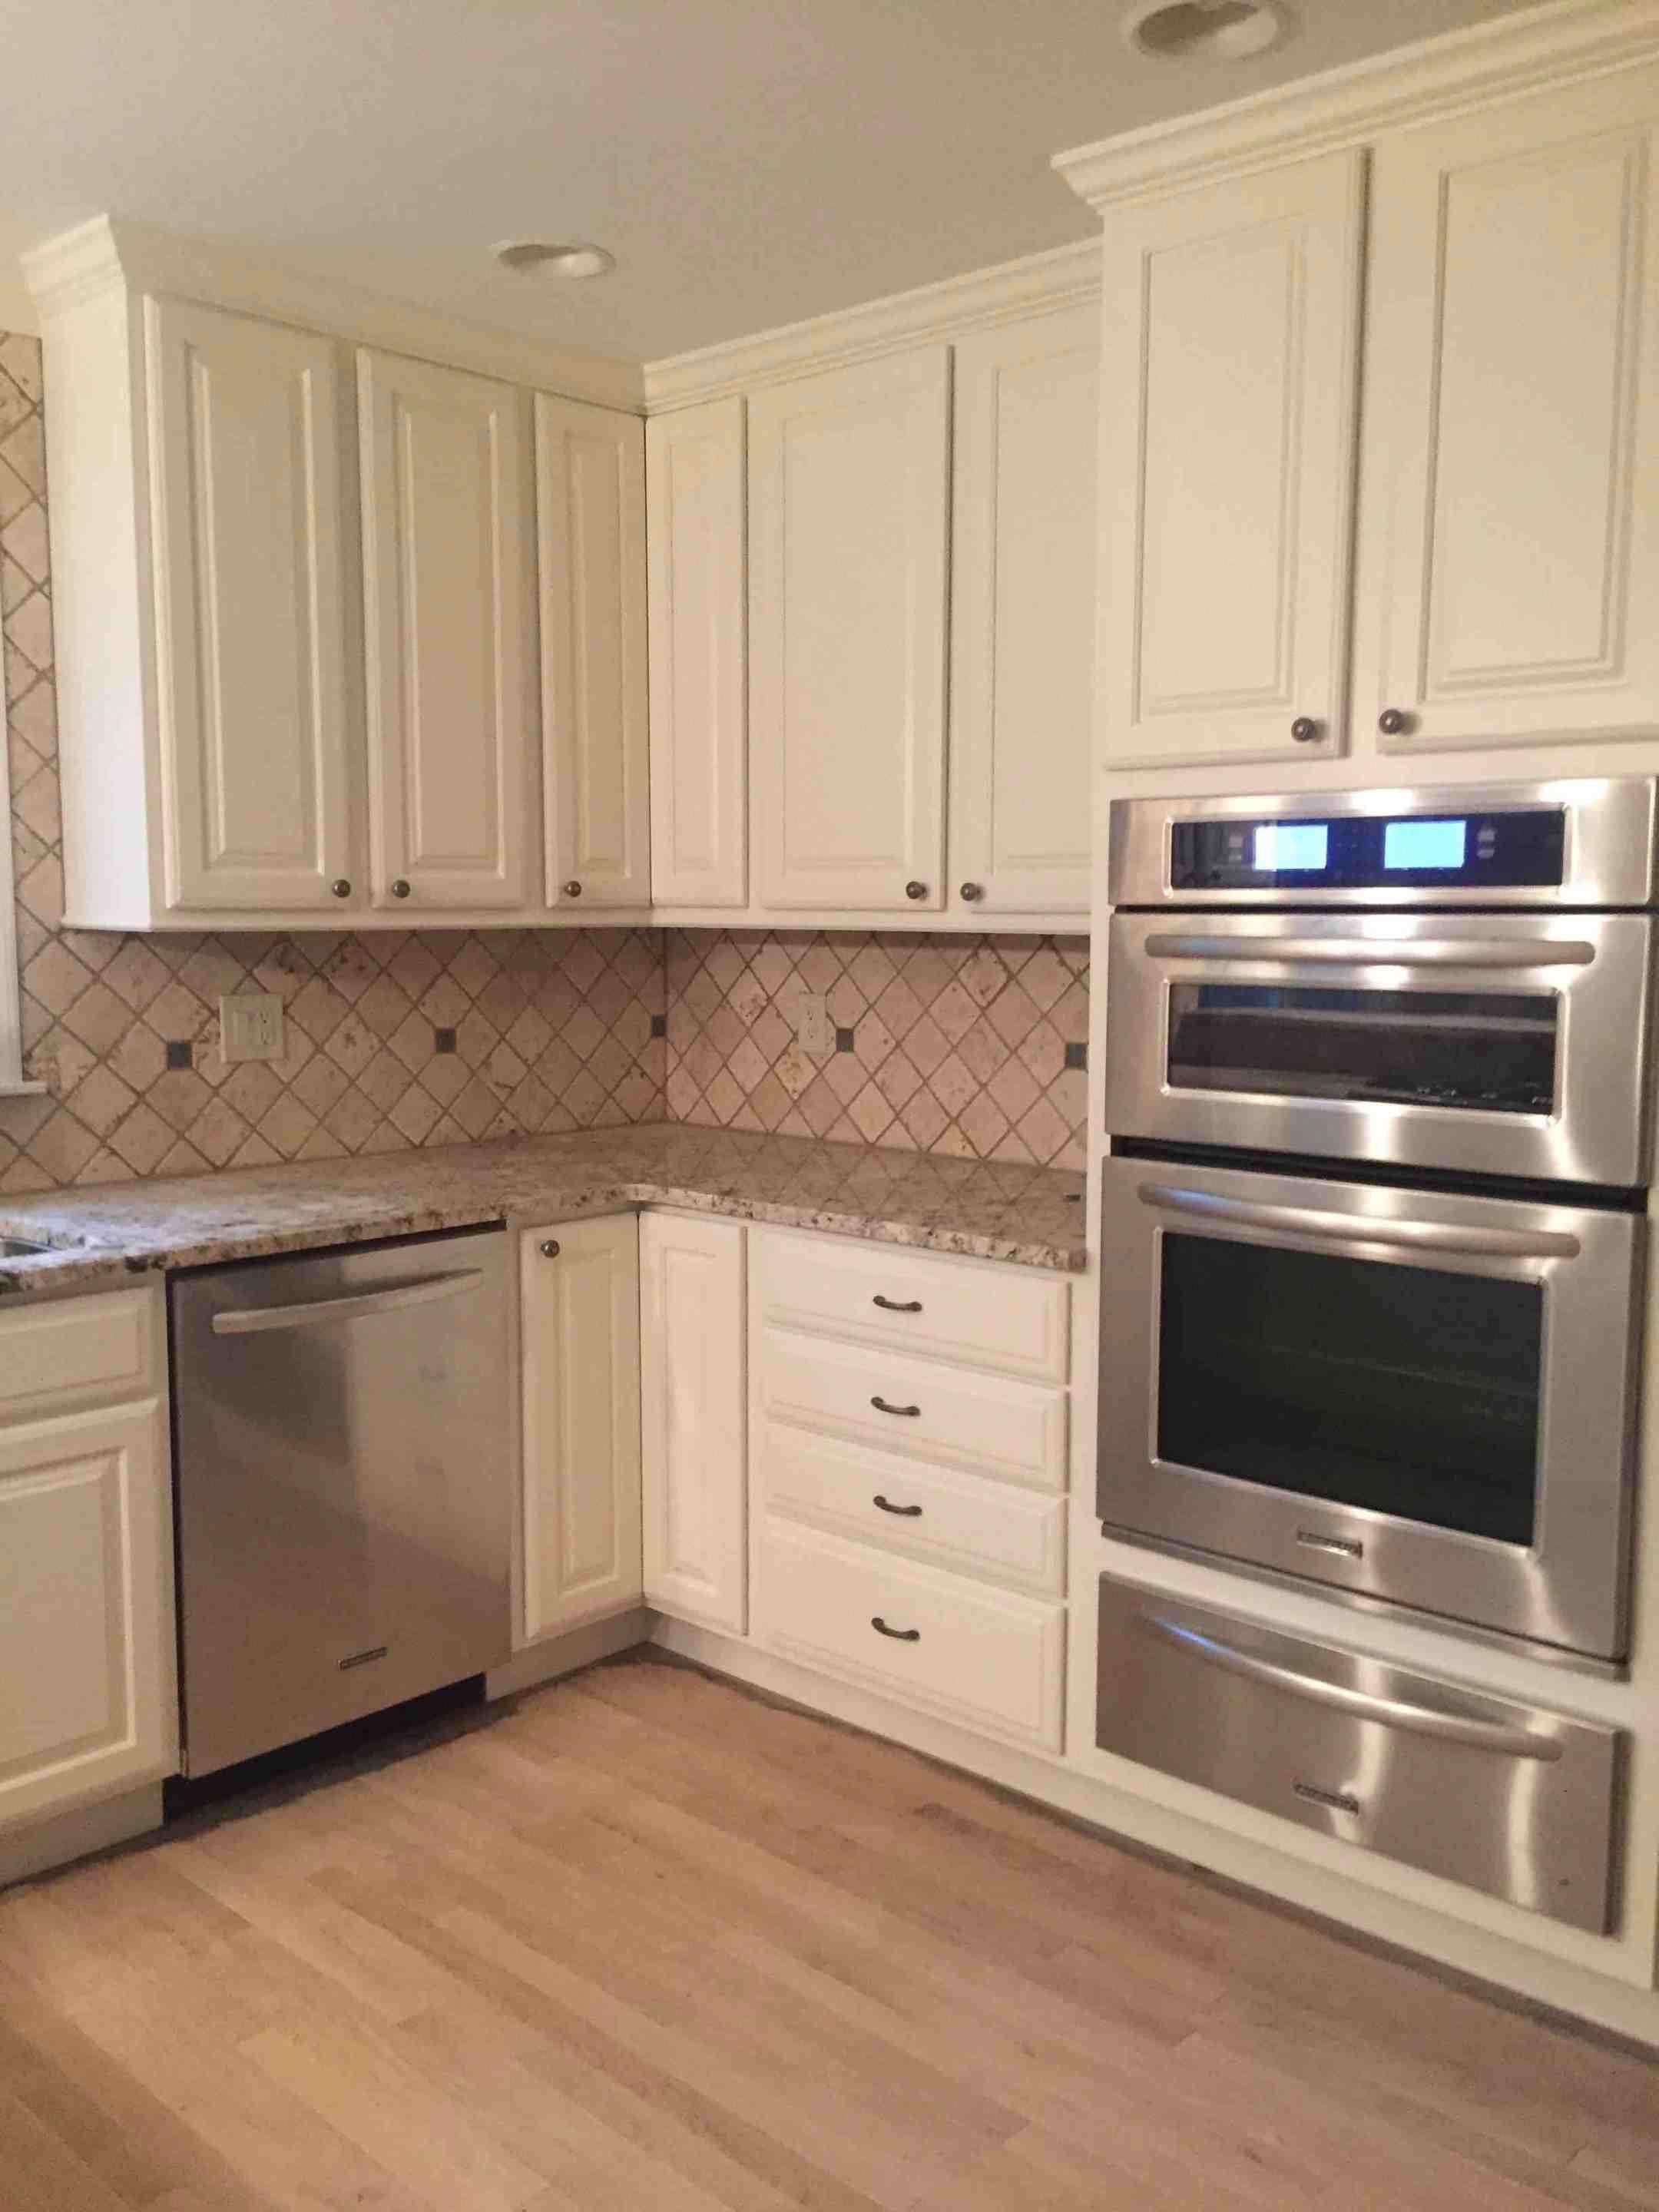 This Unique Keyword Is Certainly An Interesting Style Philosophy Paintingkitchencabi Painted Kitchen Cabinets Colors Beige Kitchen Beige Kitchen Cabinets